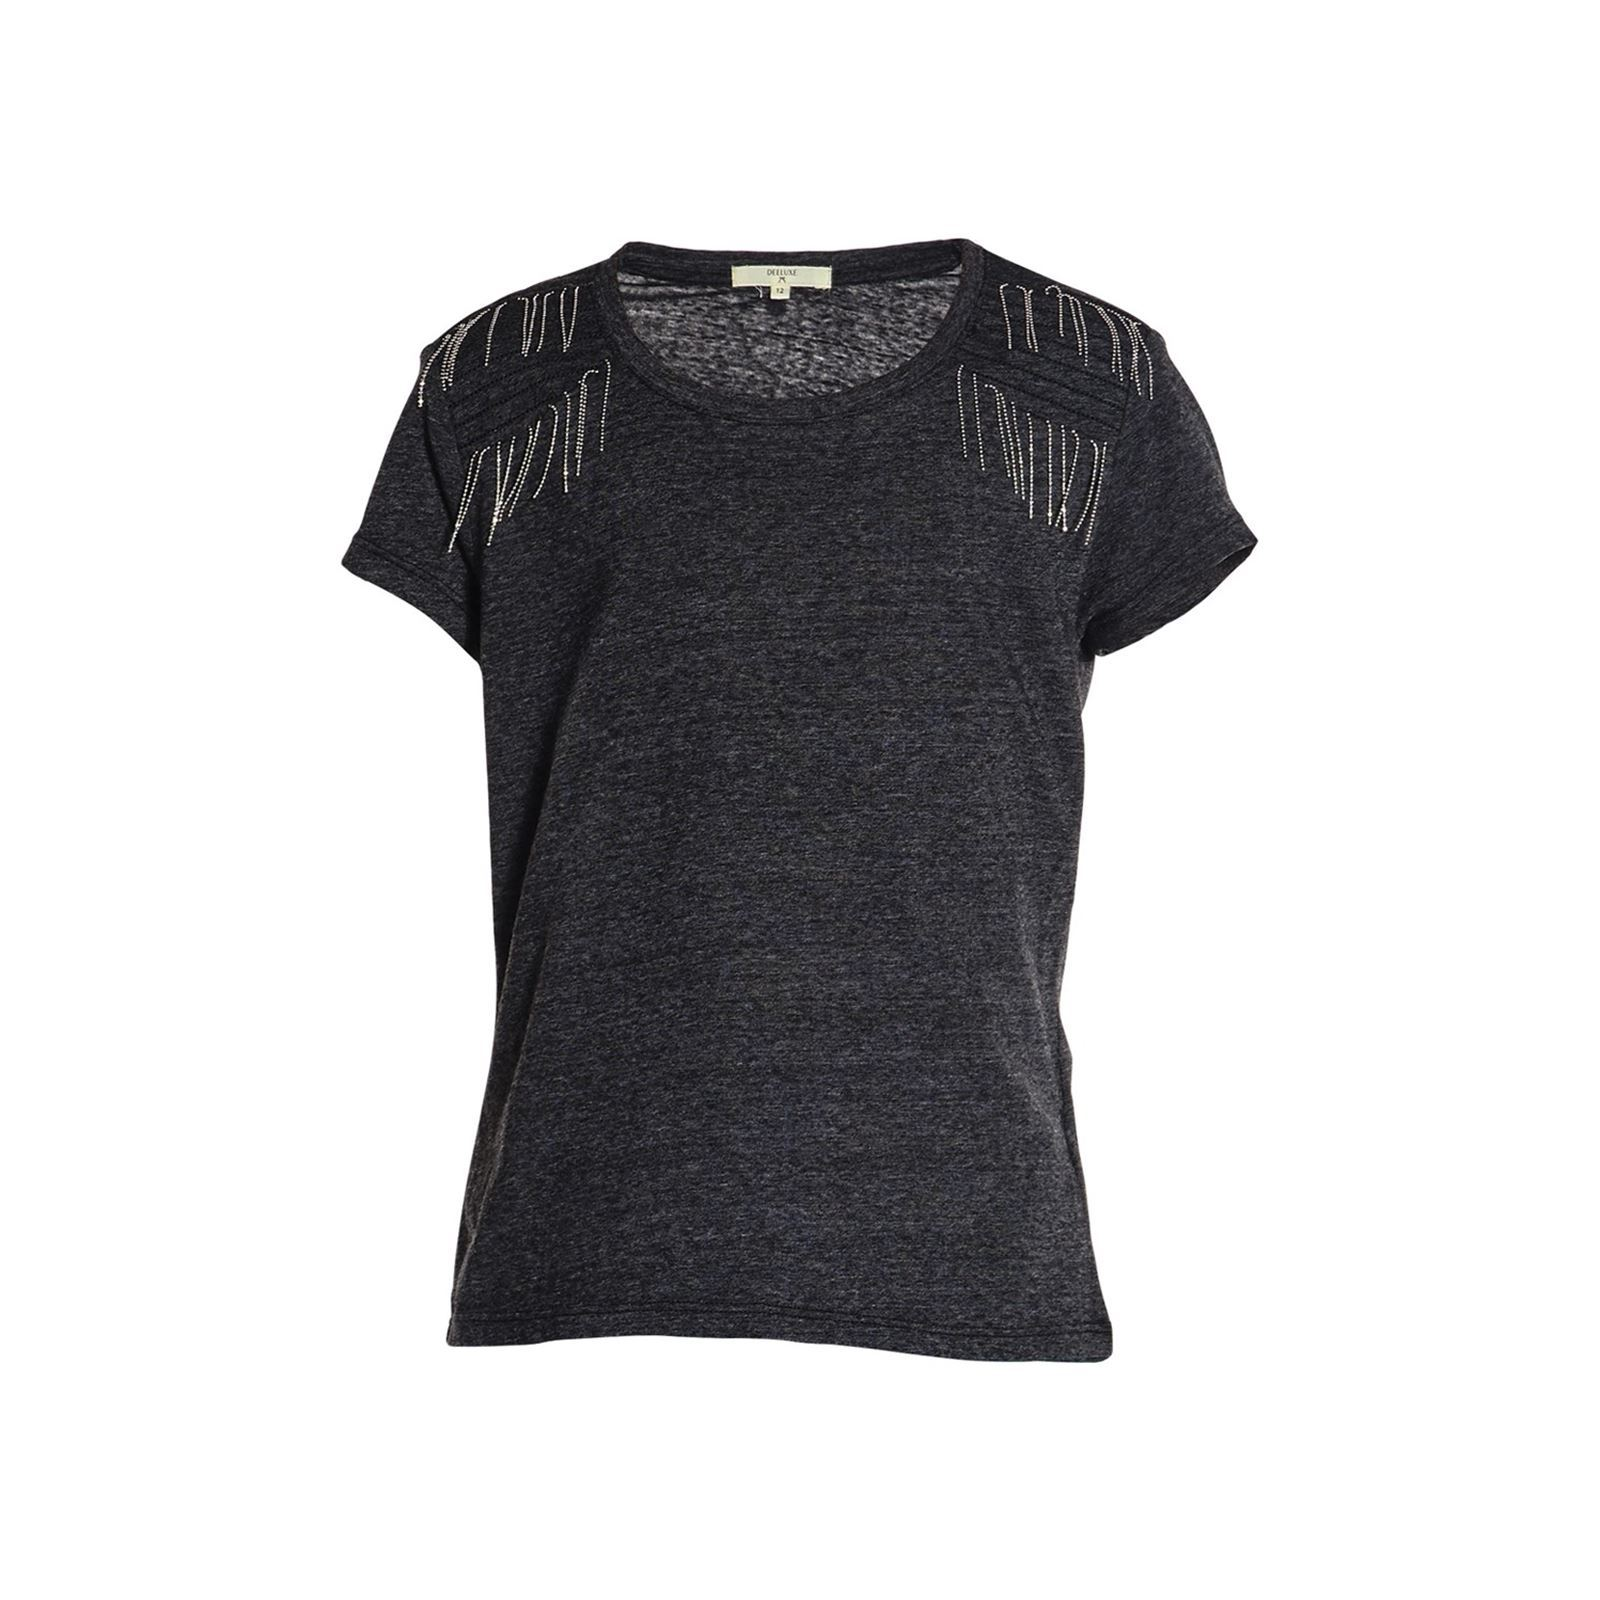 Courtes T shirt Manches Foryou Noir Deeluxe F5IqxPnE